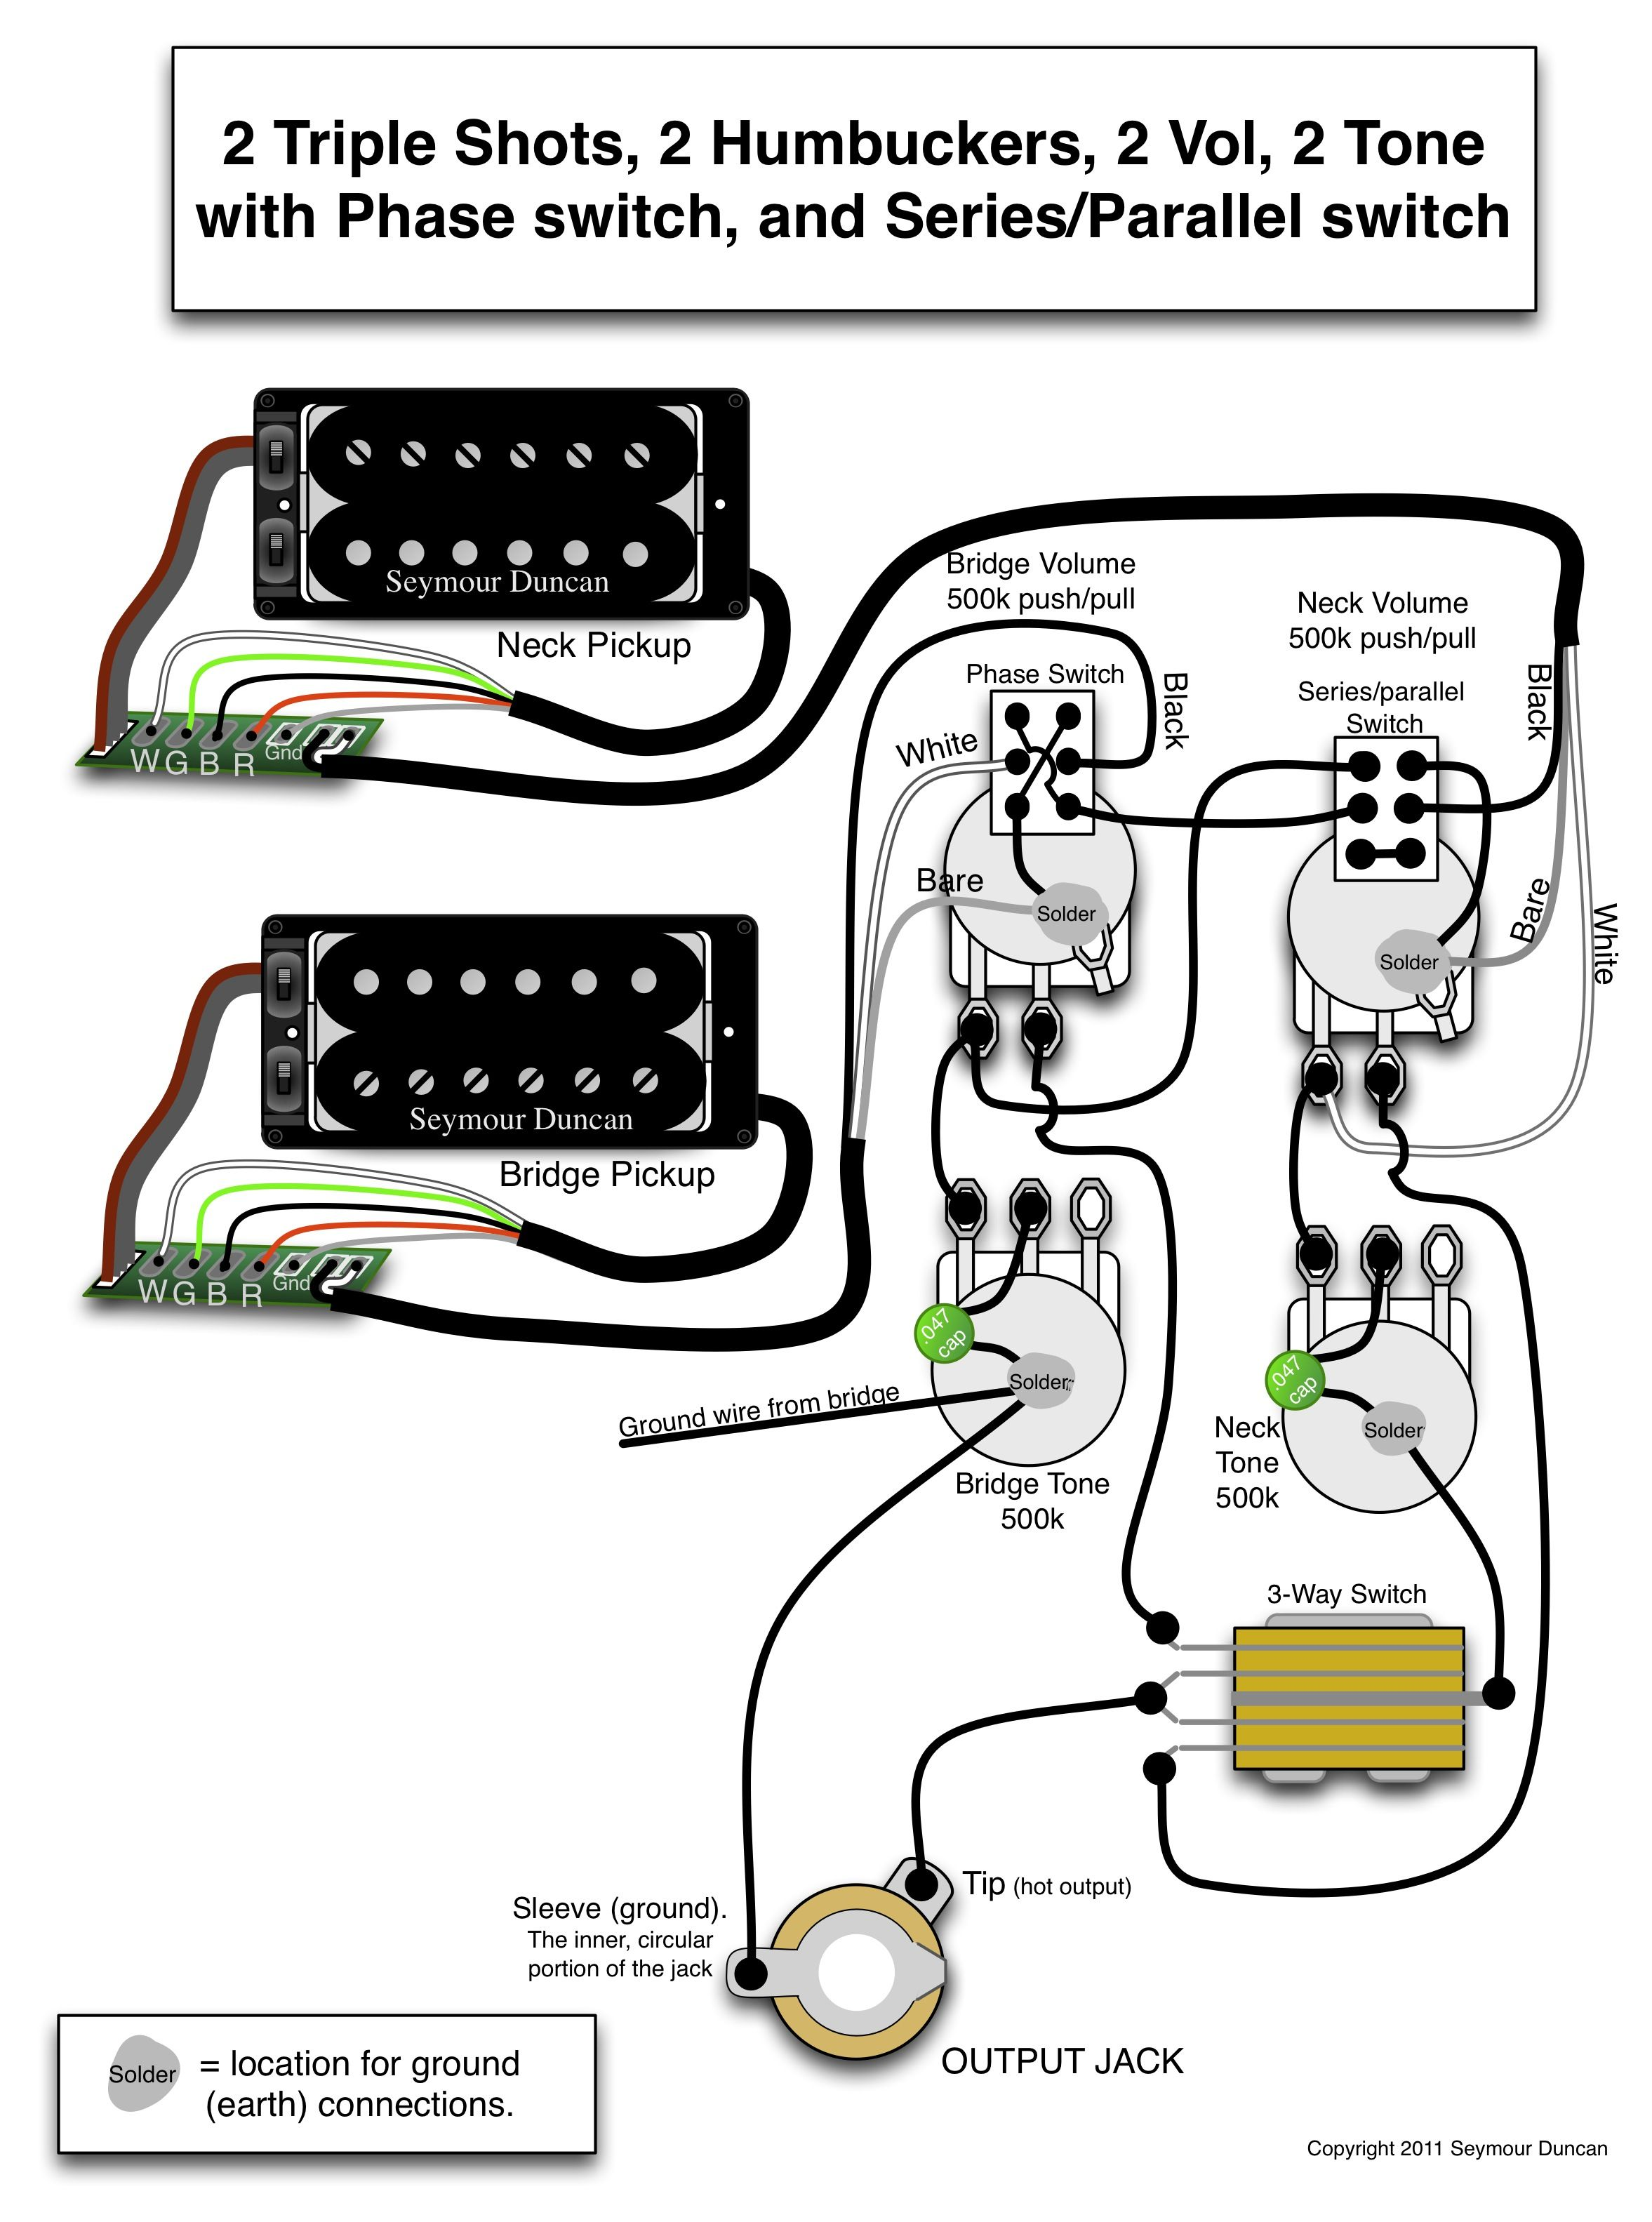 Hot Rail Pickup Wiring Diagram from i.pinimg.com